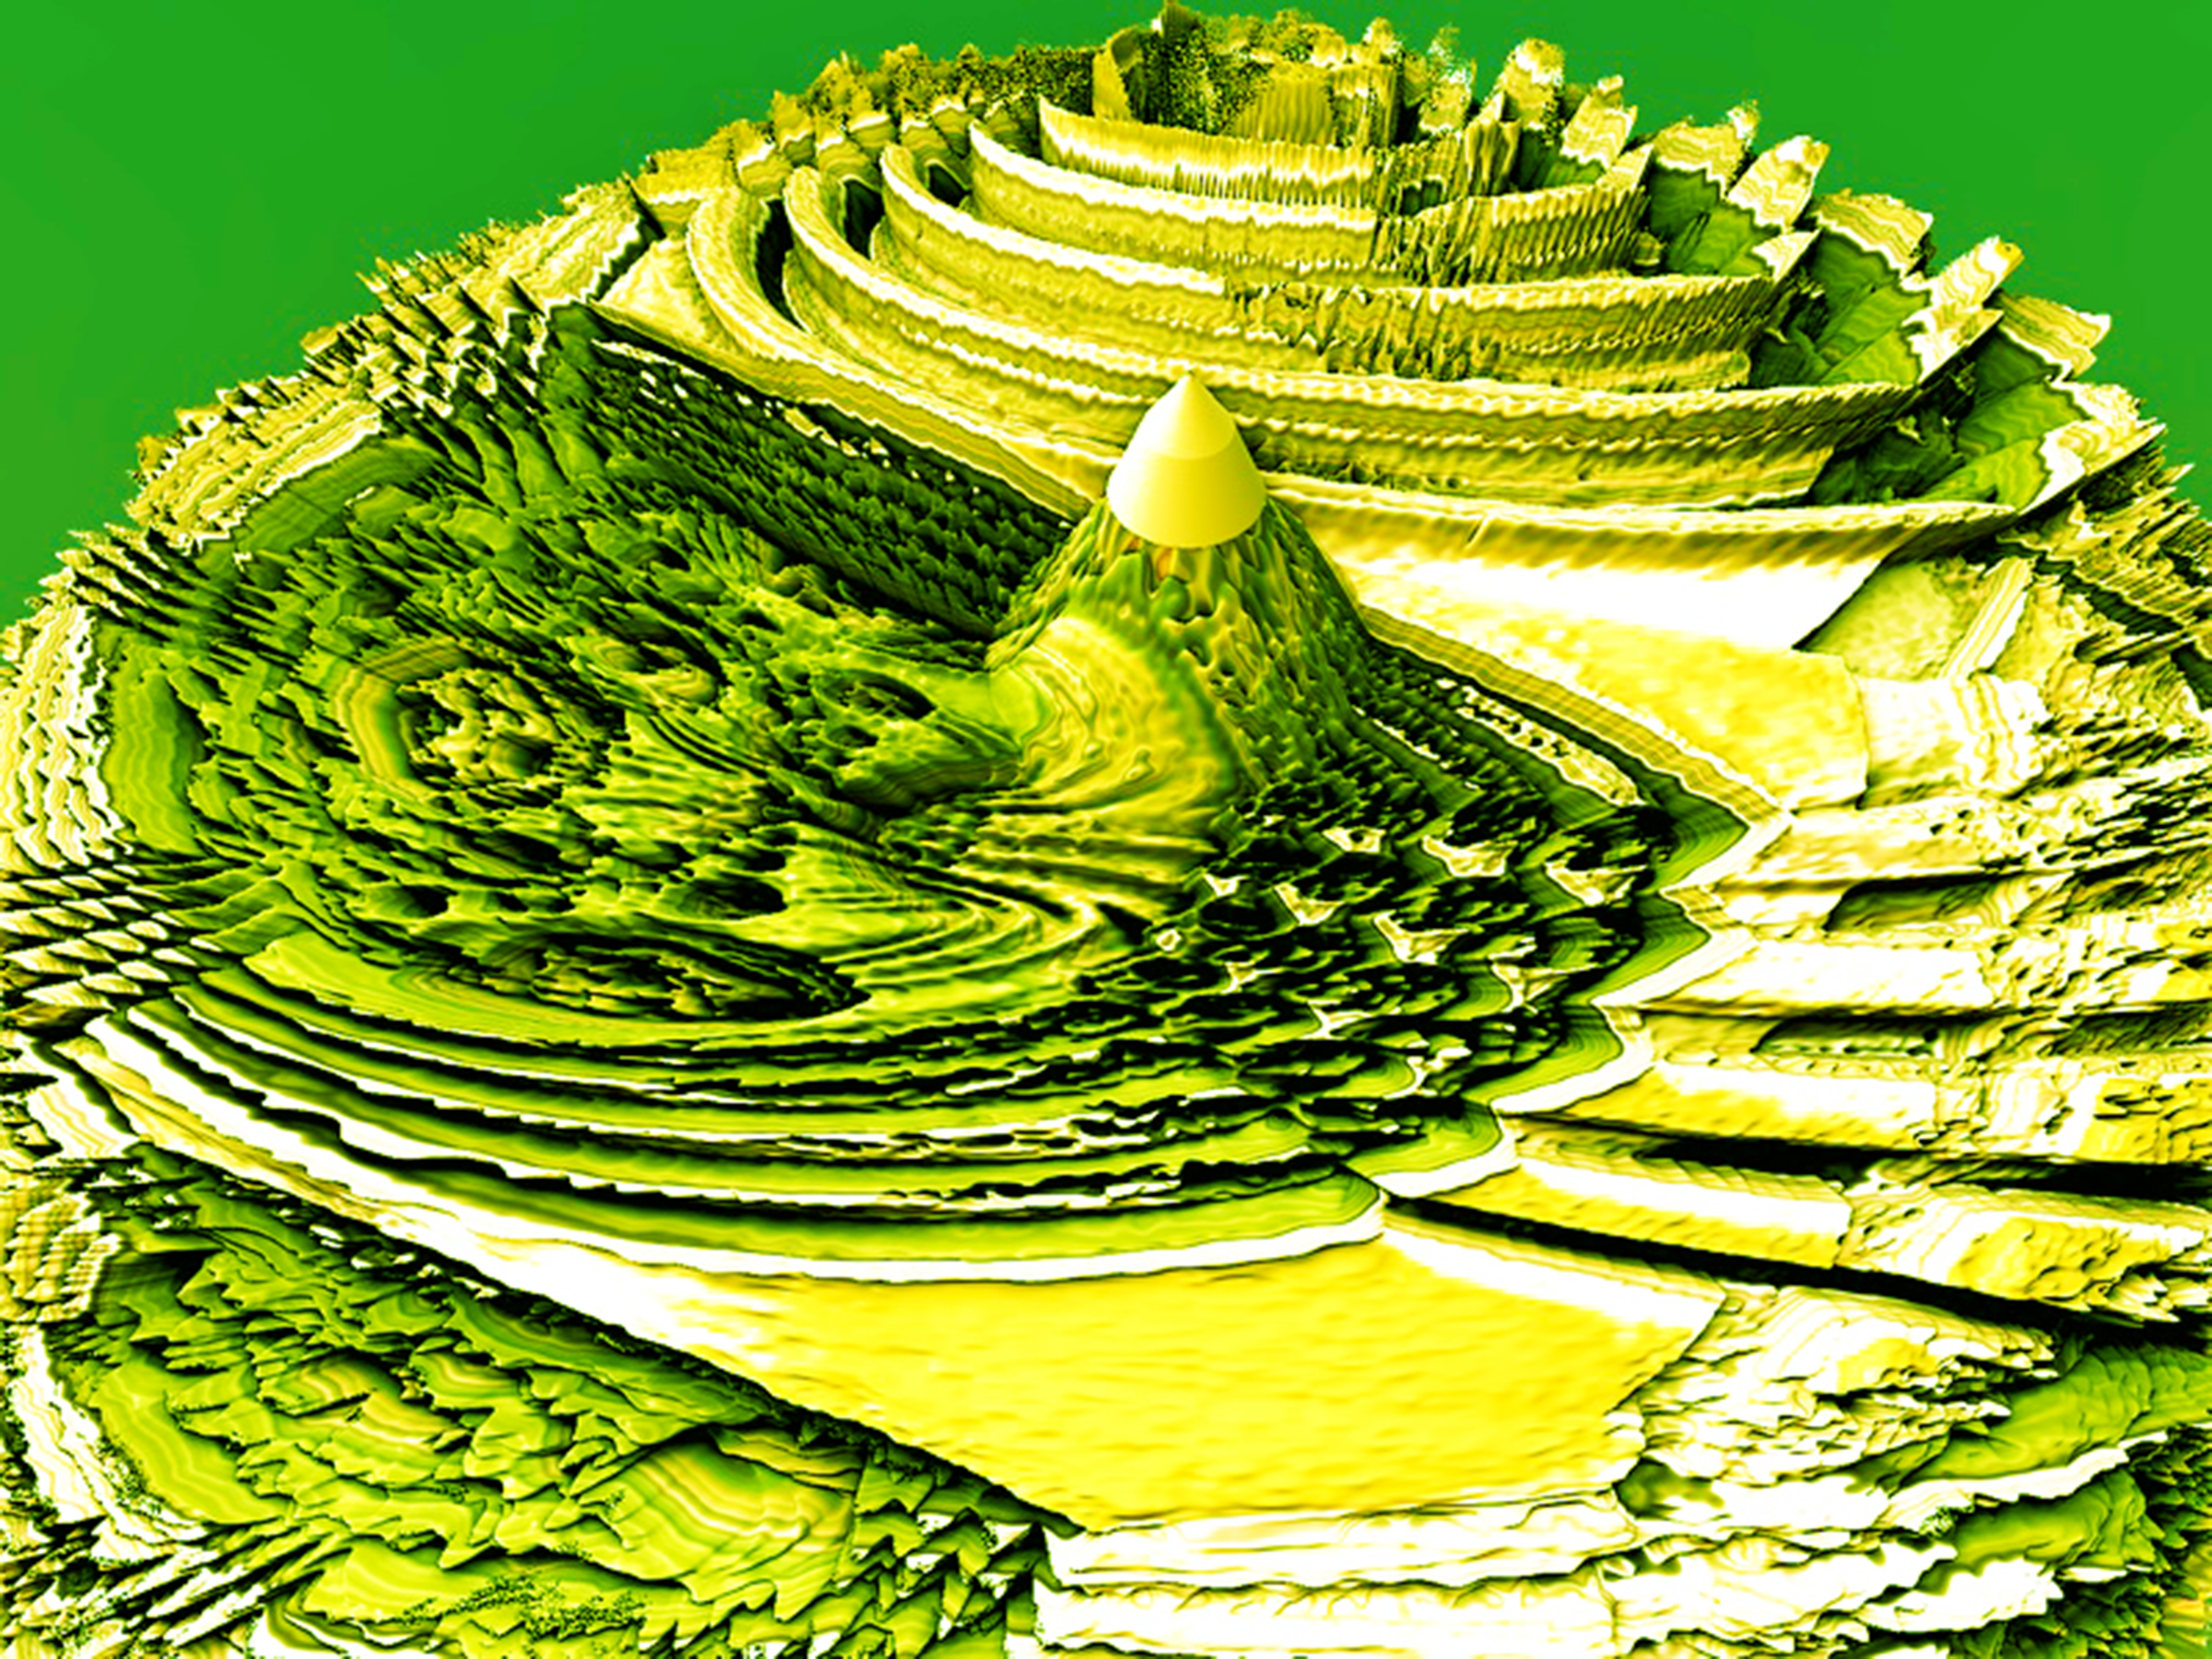 Terrace farming by oxnot on deviantart for Terrace farming images